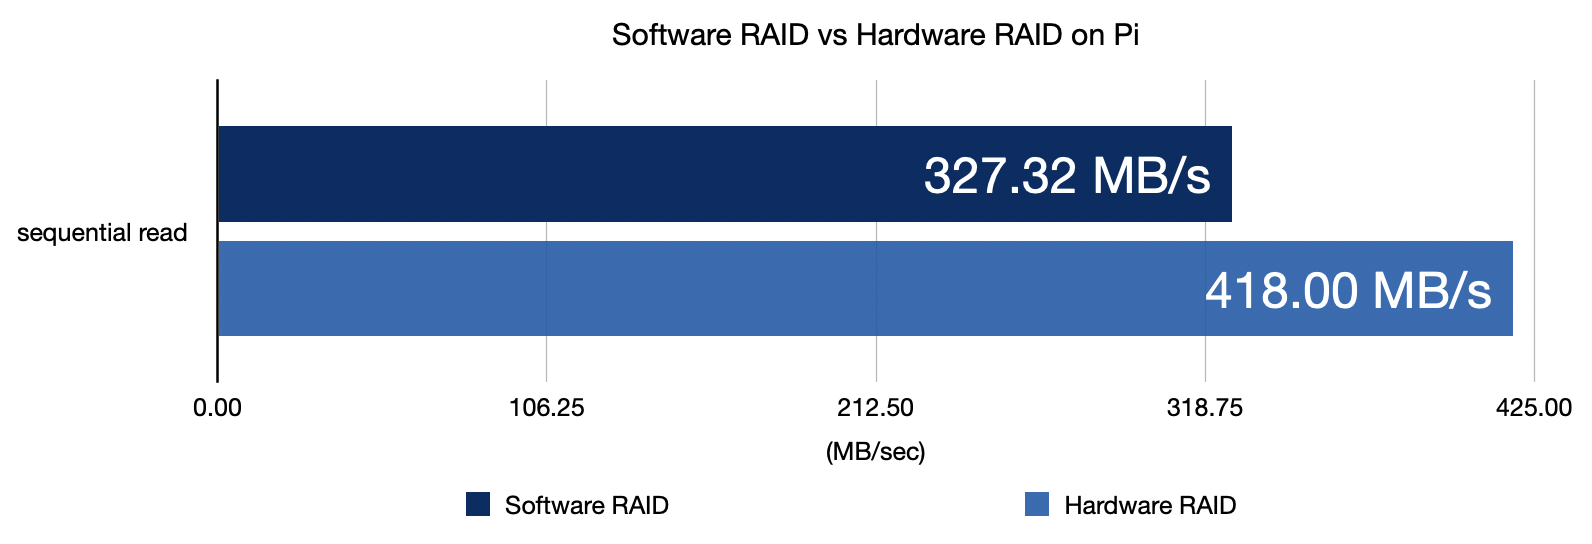 Sequential read performance on Raspberry Pi - Software vs Hardware RAID